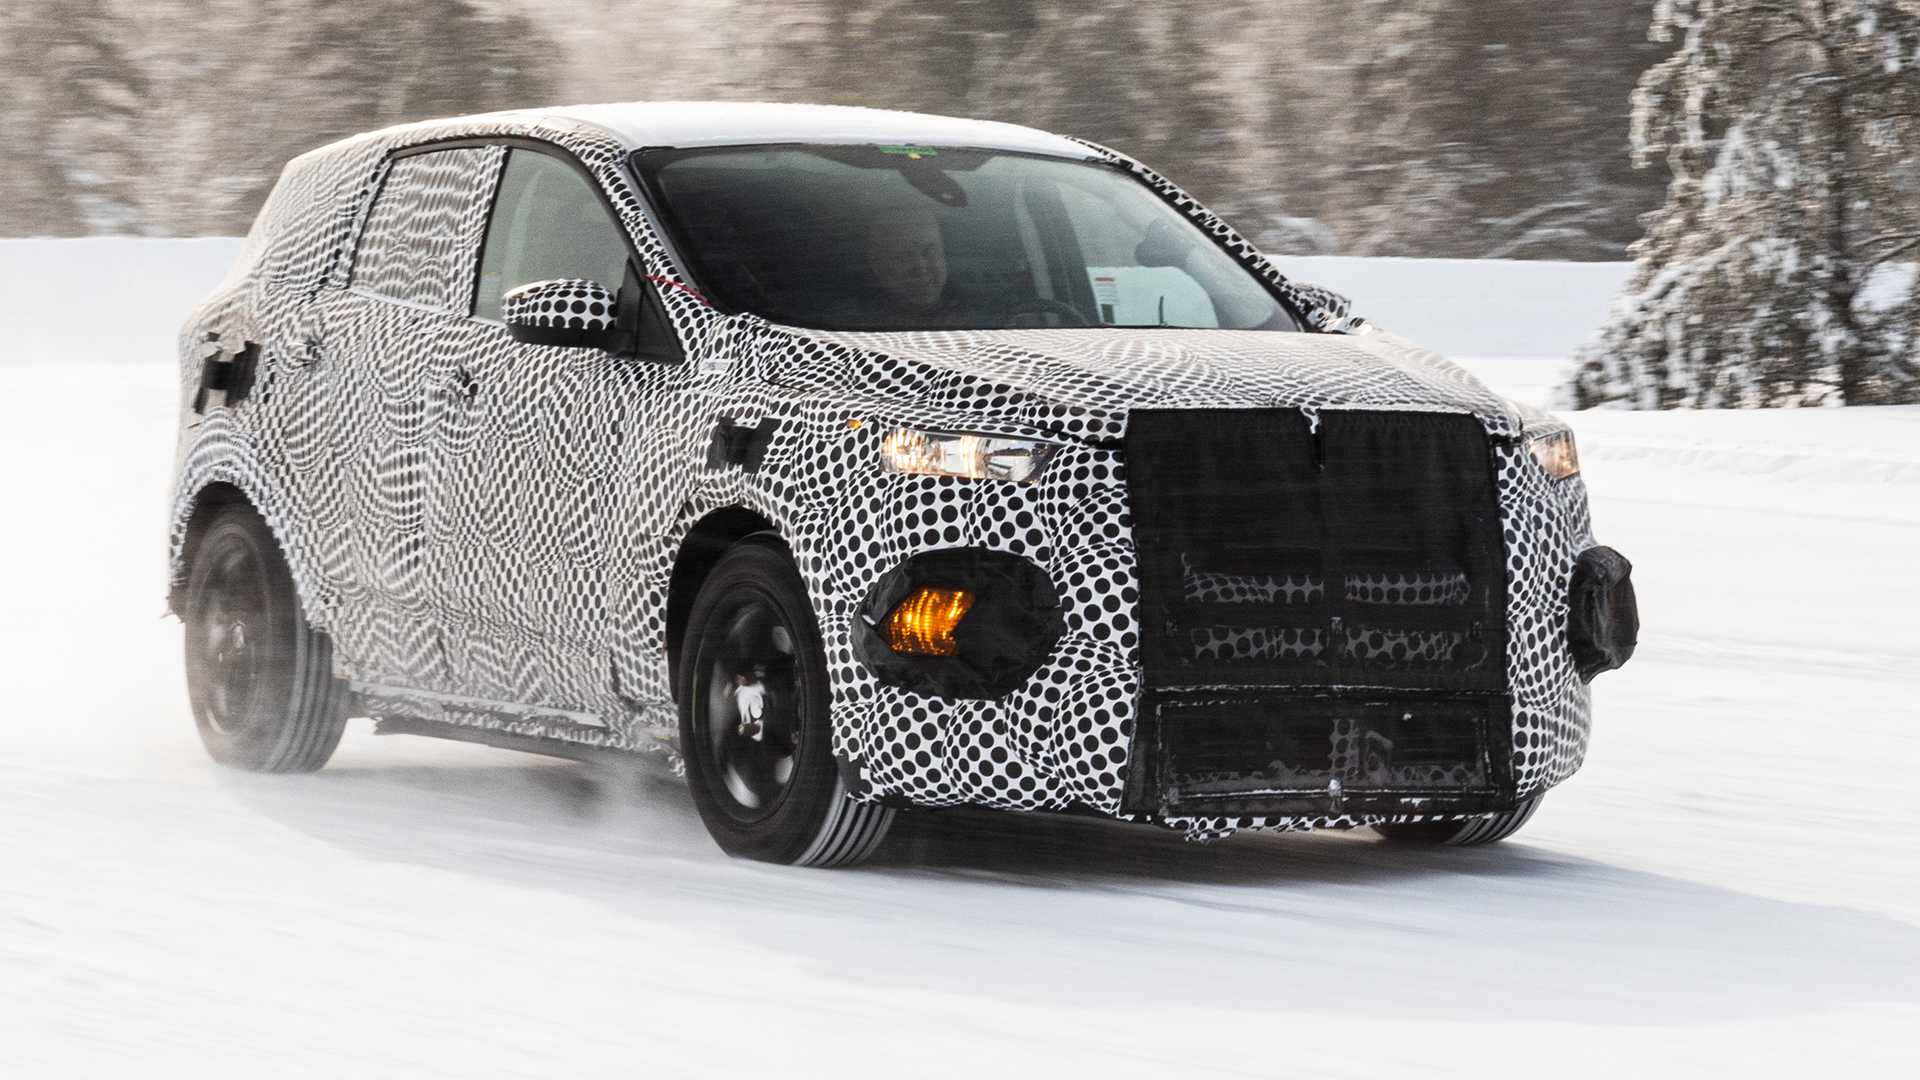 Ford Mustang-Inspired Electric SUV To Get Battery Size, RWD/AWD Options